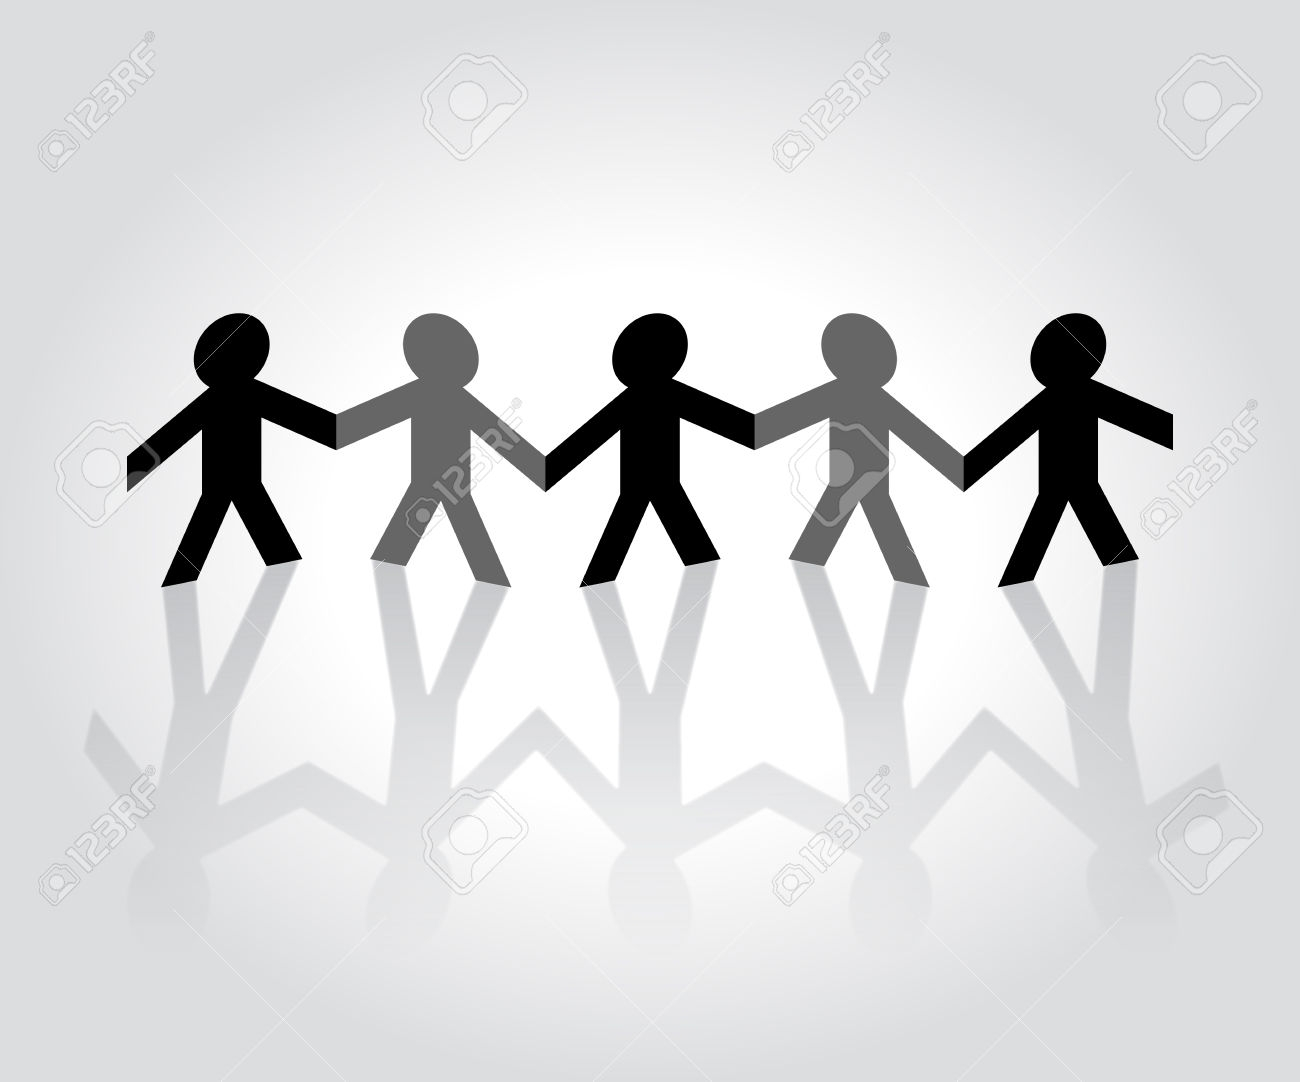 Black hand holding people clipart image free library Drawing Of People Holding Hands | Free download best Drawing Of ... image free library